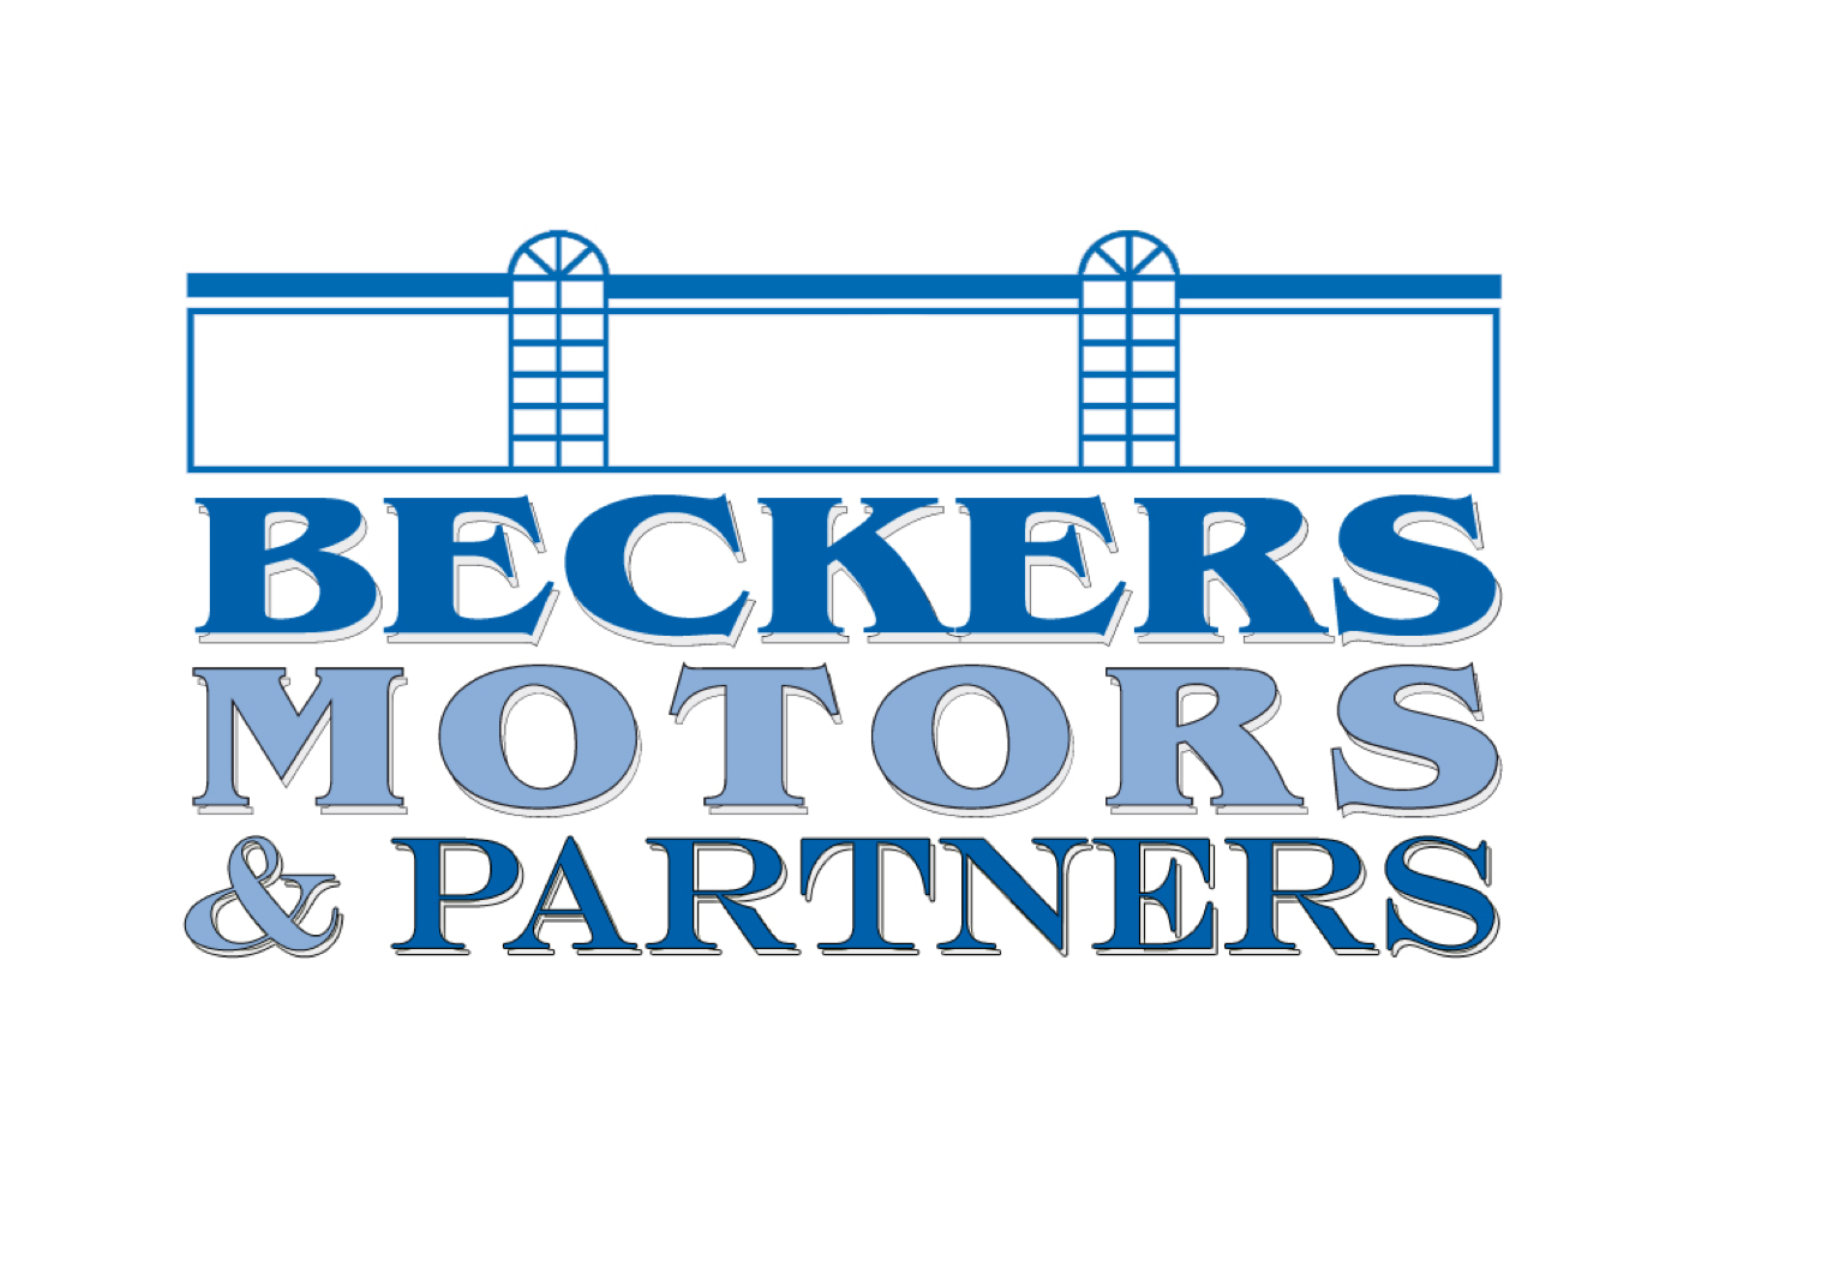 Garage Beckers Motors & Partners